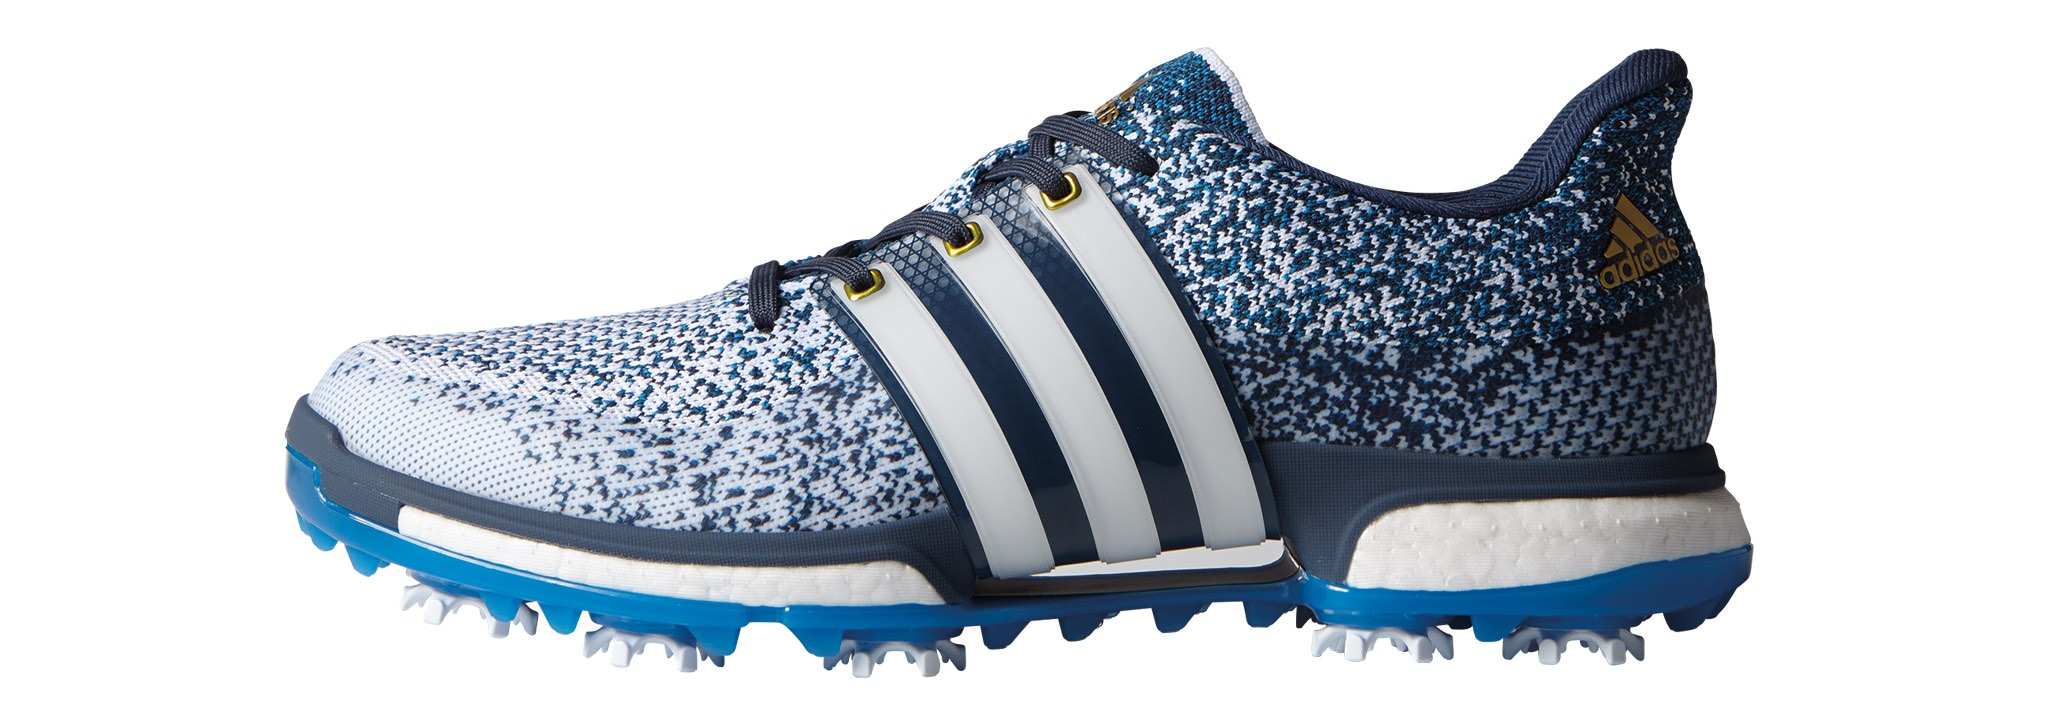 6 Of The Best Summer Golf Shoes